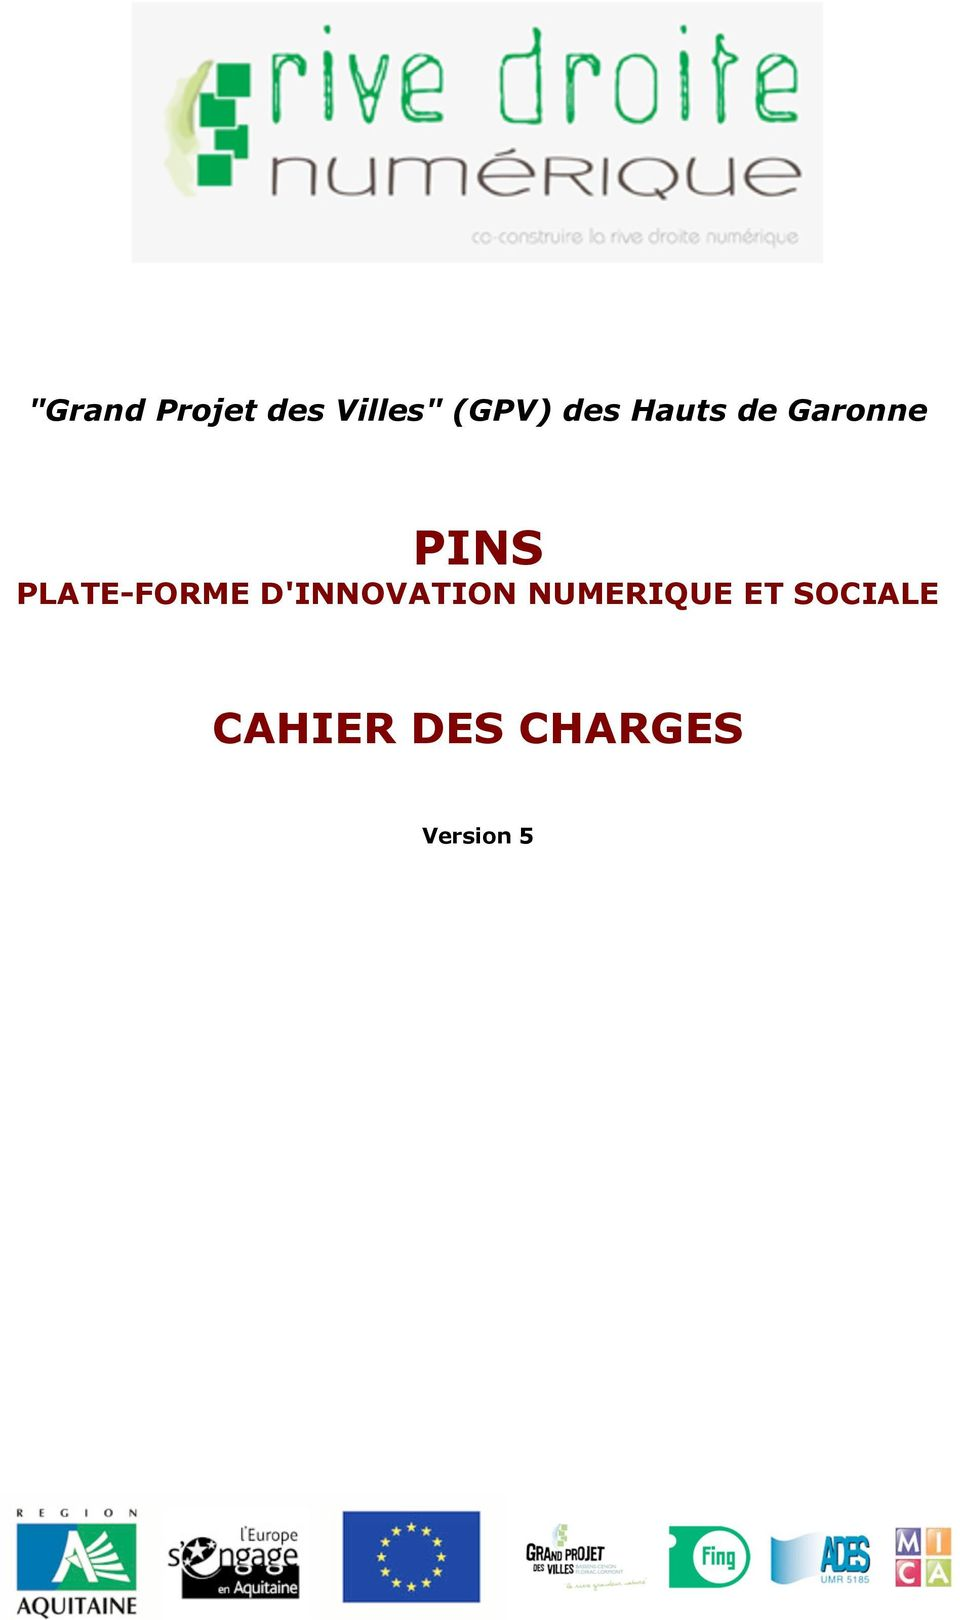 PLATE-FORME D'INNOVATION